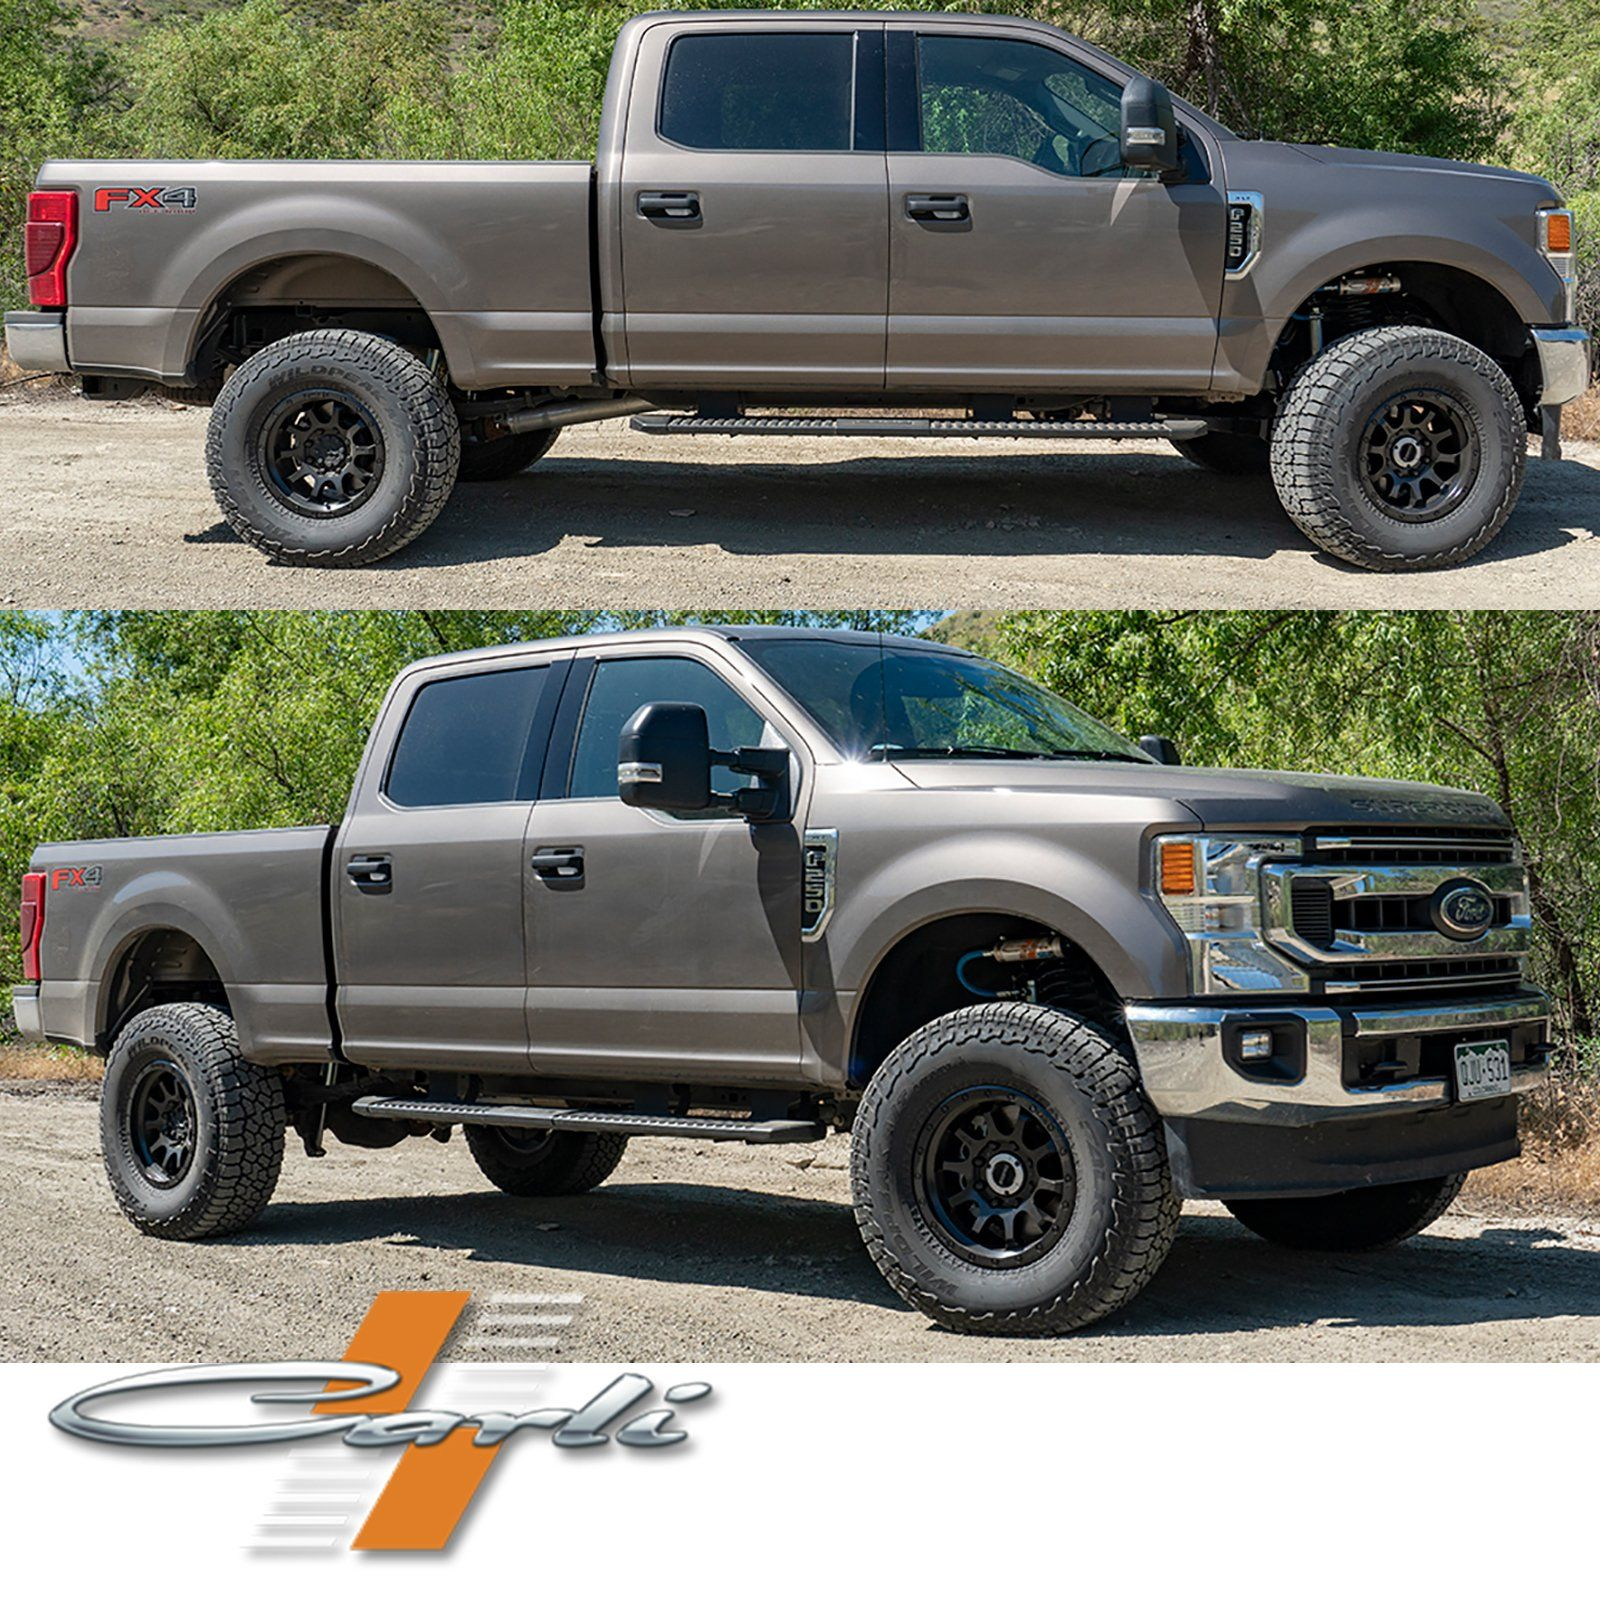 Carli Suspension | '17-Current Ford F250/350 6.2/7.3L Gas Complete Suspension Systems